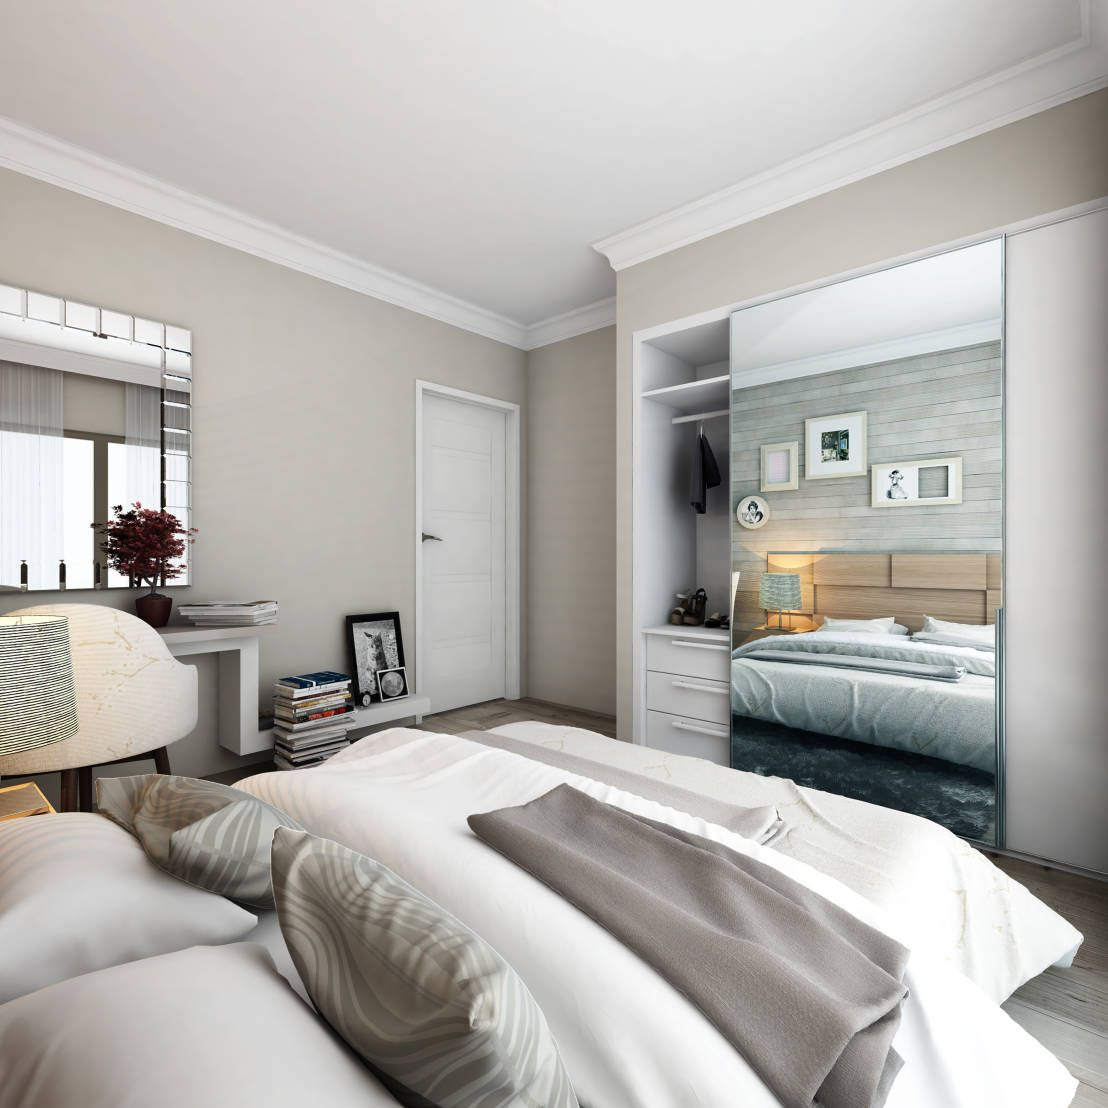 Window Wardrobe: Picking The Right Closet For Your Bedroom